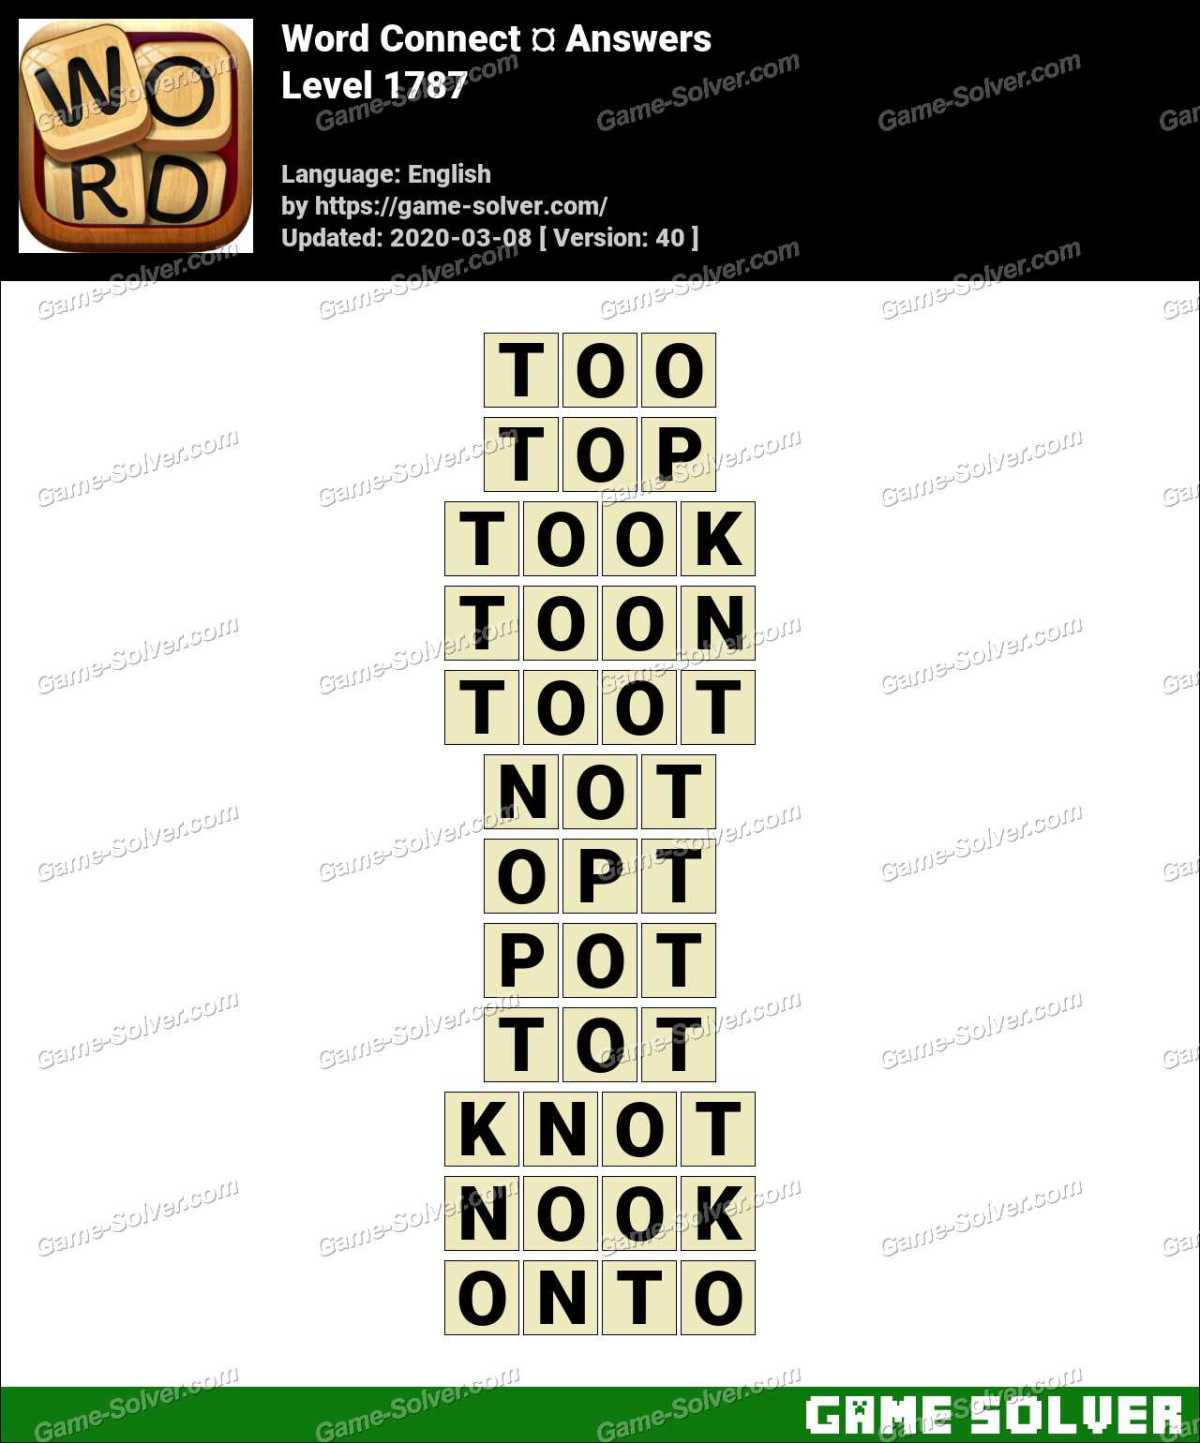 Word Connect Level 1787 Answers